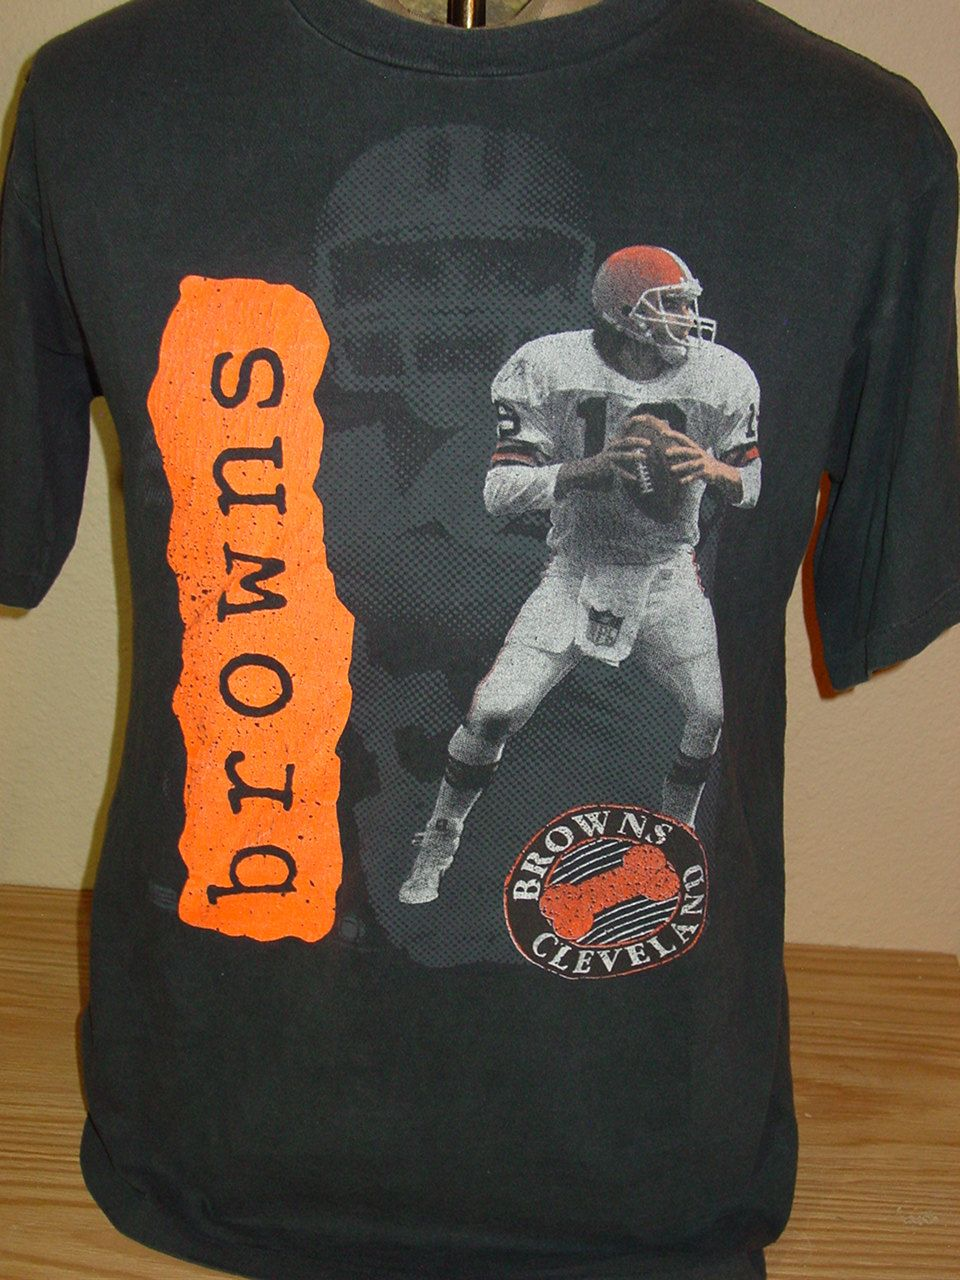 ffe21a65a9a vintage Bernie Kosar Cleveland Browns football t shirt Large by  vintagerhino247 on Etsy